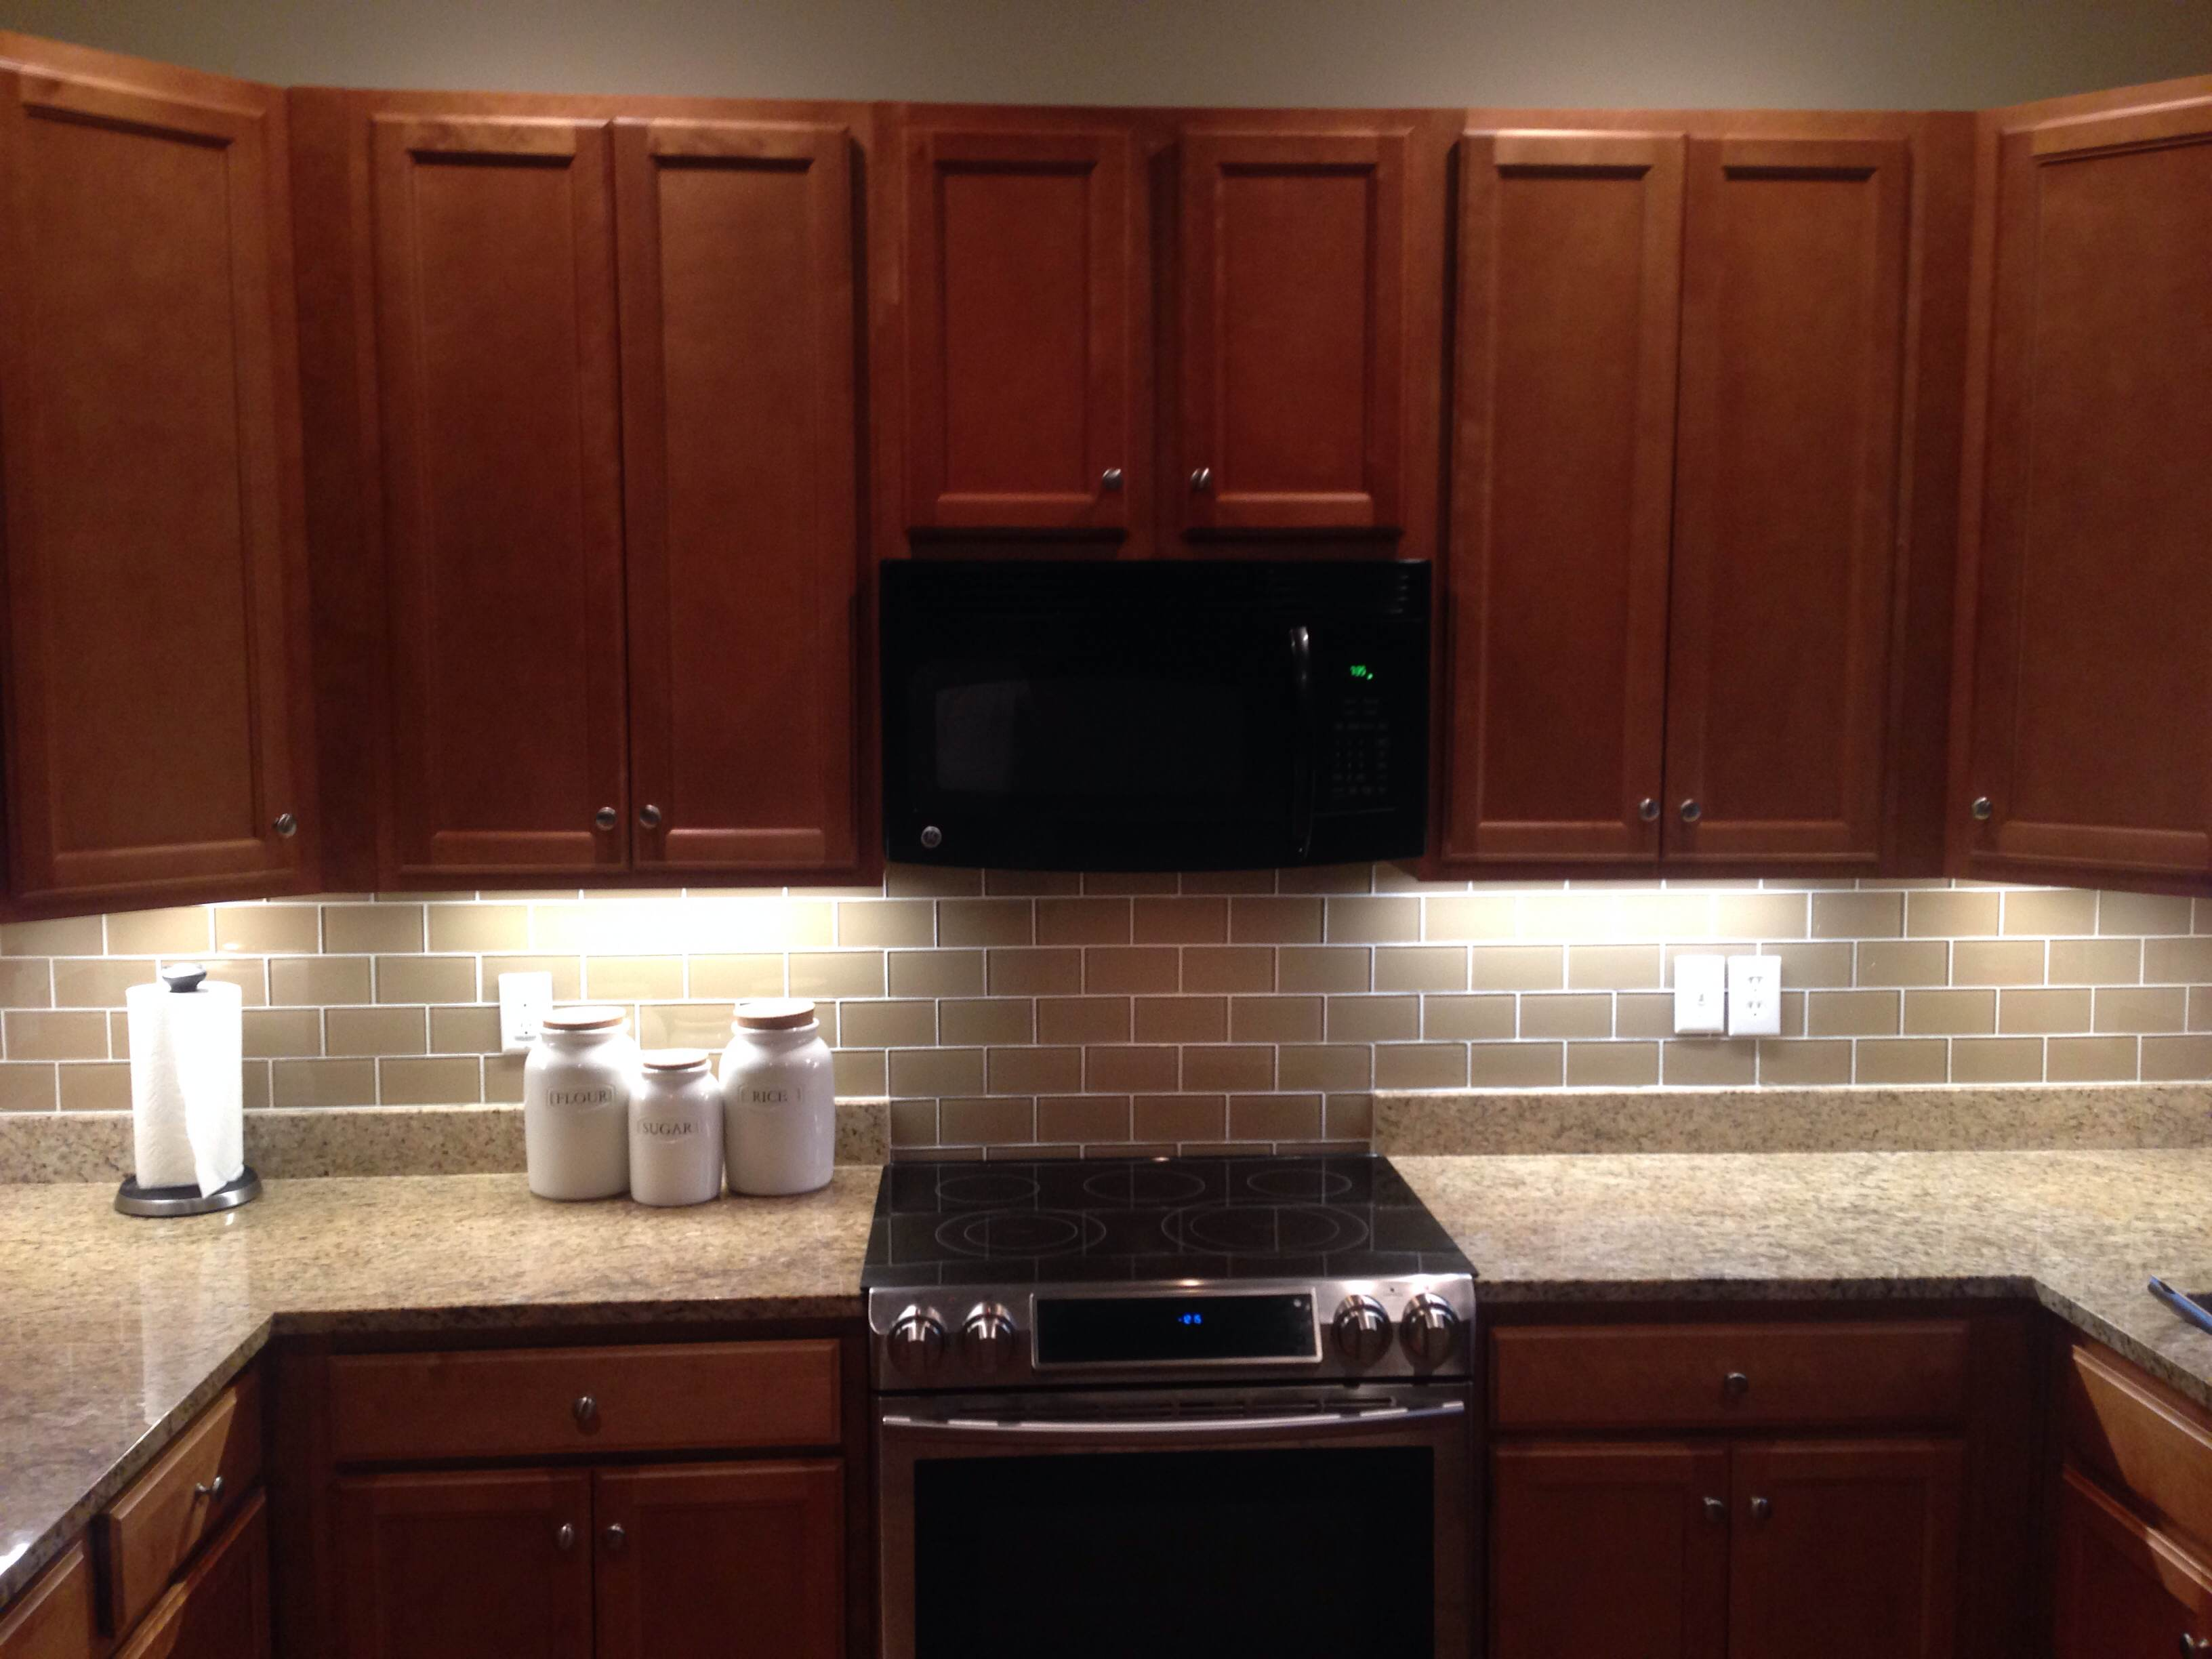 Black And Grey Kitchen Backsplash Grey Wall With Brown Laminated Wooden Wall Cabinet And